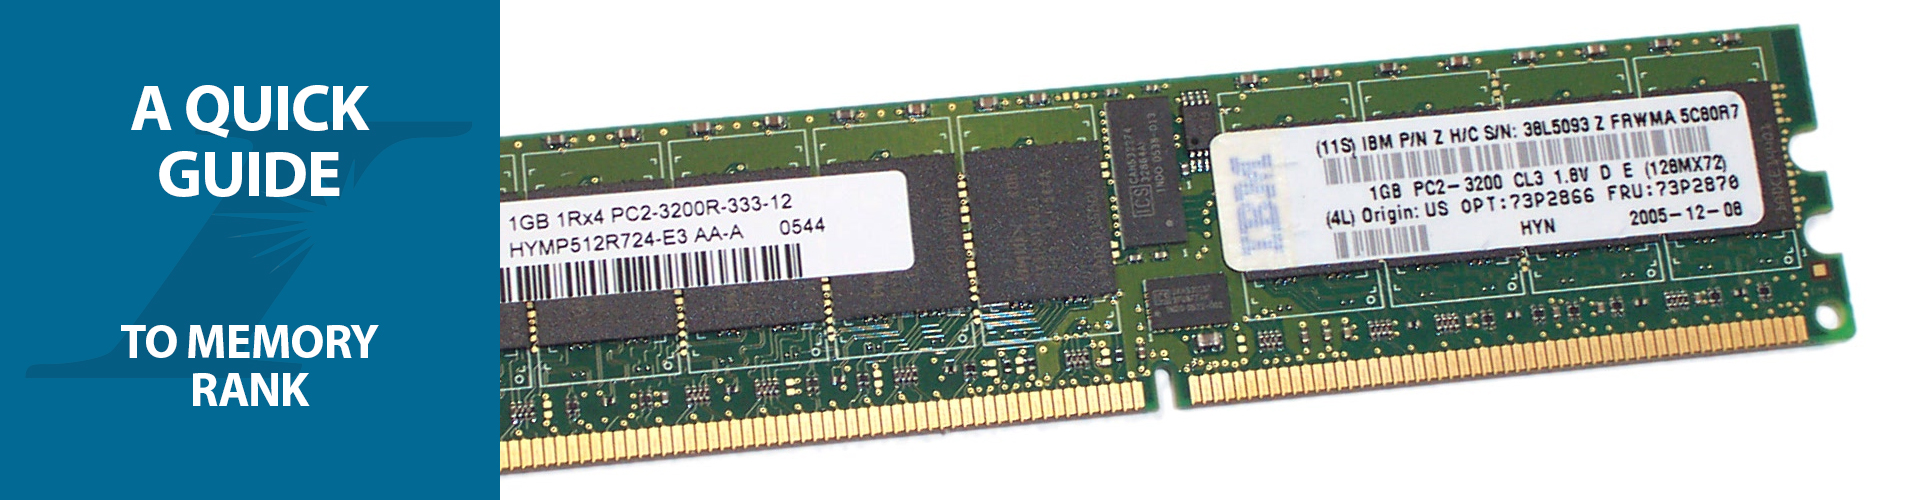 single dual rank ram